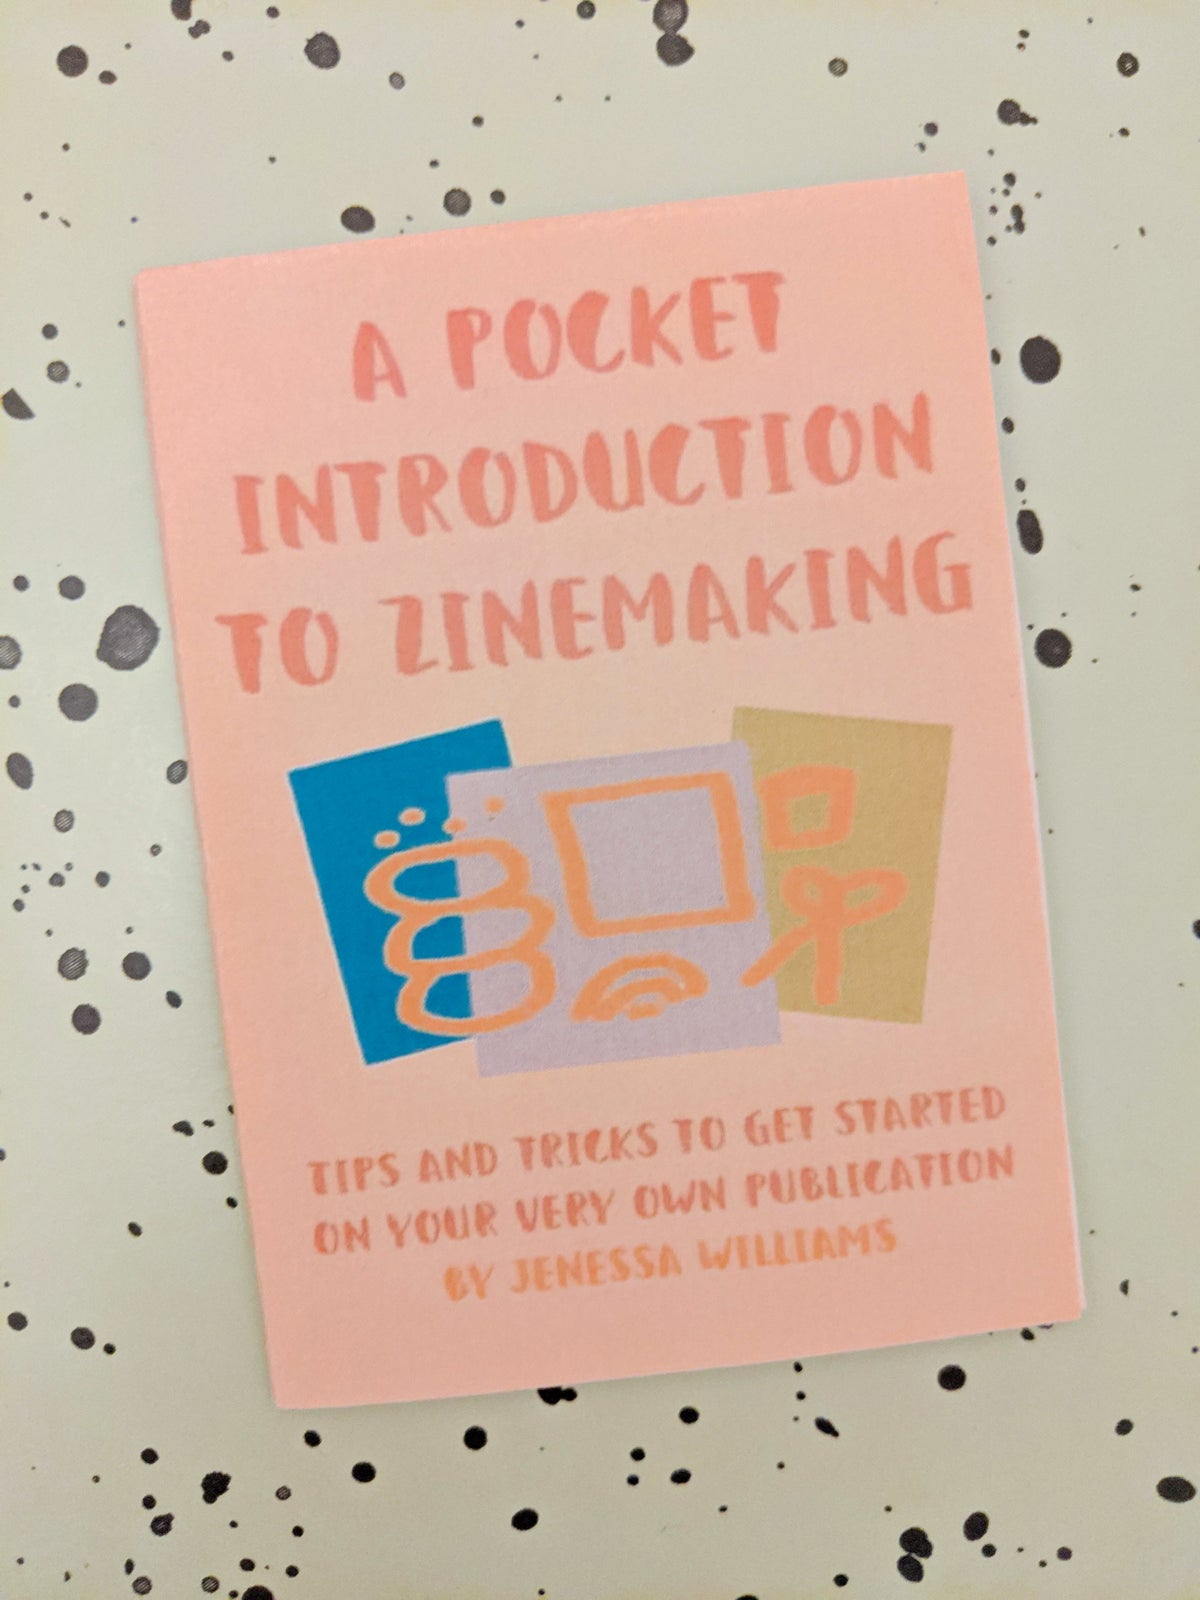 Image of A Pocket Introduction To Zinemaking